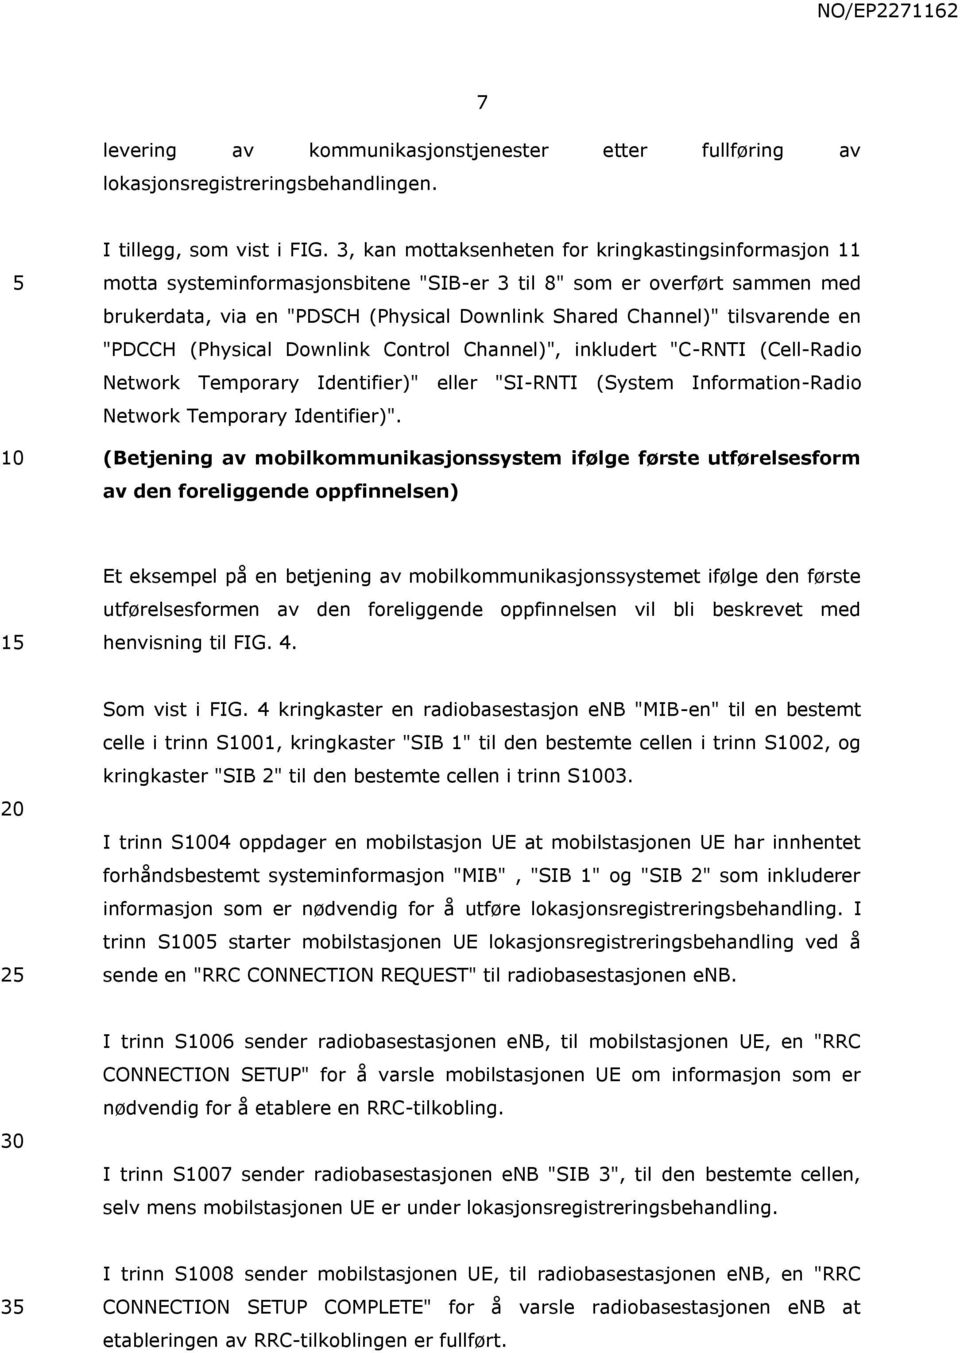 "tilsvarende en ""PDCCH (Physical Downlink Control Channel)"", inkludert ""C-RNTI (Cell-Radio Network Temporary Identifier)"" eller ""SI-RNTI (System Information-Radio Network Temporary Identifier)""."